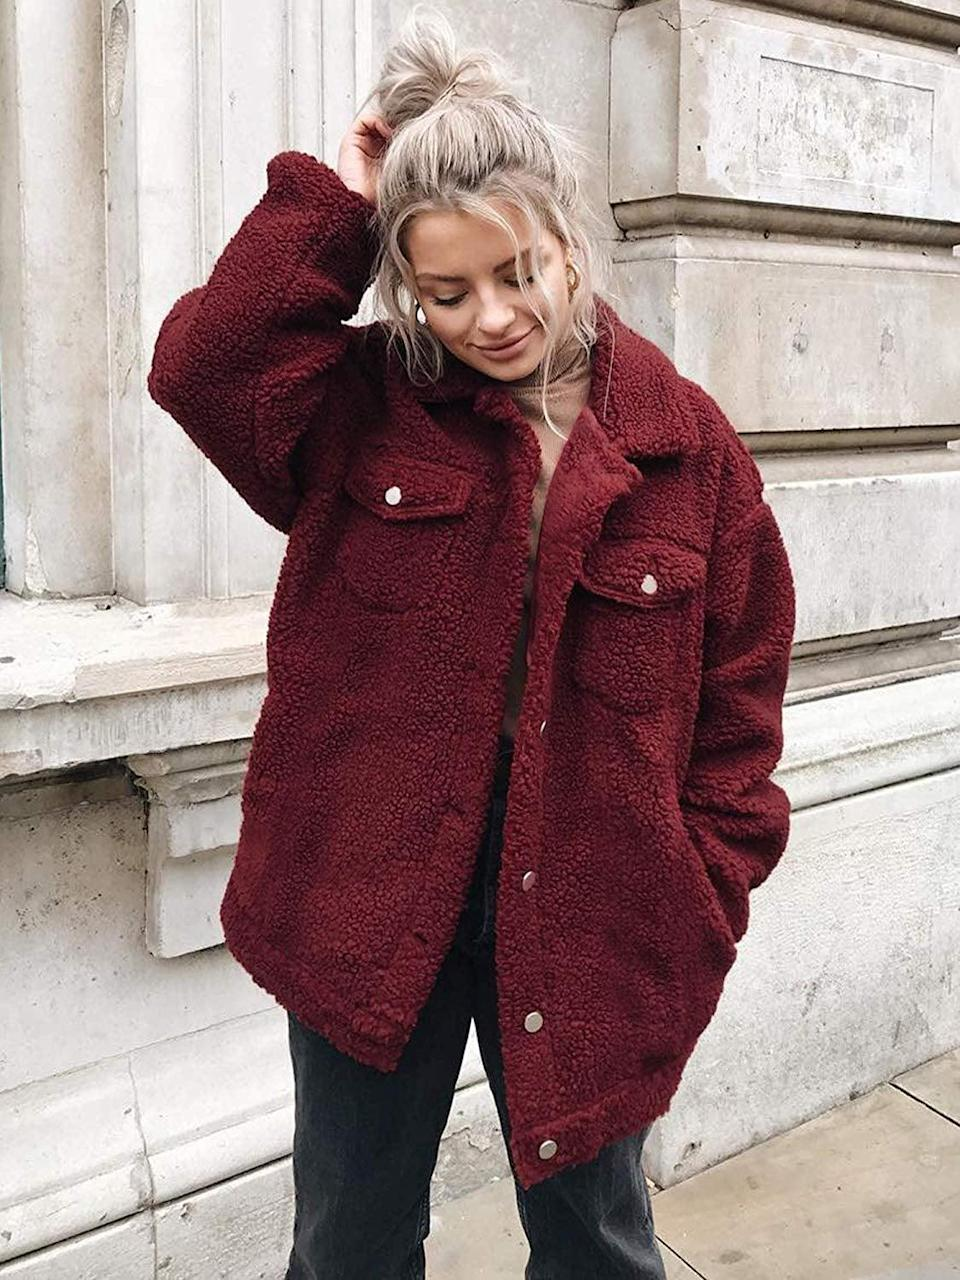 """<p>They'll always stay warm when they are in this <a href=""""https://www.popsugar.com/buy/Ecowish-Fuzzy-Fleece-Coat-484627?p_name=Ecowish%20Fuzzy%20Fleece%20Coat&retailer=amazon.com&pid=484627&price=32&evar1=savvy%3Aus&evar9=25897406&evar98=https%3A%2F%2Fwww.popsugar.com%2Fsmart-living%2Fphoto-gallery%2F25897406%2Fimage%2F46694737%2FEcowish-Fuzzy-Fleece-Coat&list1=gifts%2Choliday%2Cage%2Cgift%20guide%2Cmillennials%2Choliday%20living%2Cgifts%20for%20women%2Cgifts%20under%20%2450&prop13=mobile&pdata=1"""" rel=""""nofollow noopener"""" class=""""link rapid-noclick-resp"""" target=""""_blank"""" data-ylk=""""slk:Ecowish Fuzzy Fleece Coat"""">Ecowish Fuzzy Fleece Coat </a> ($32).</p>"""